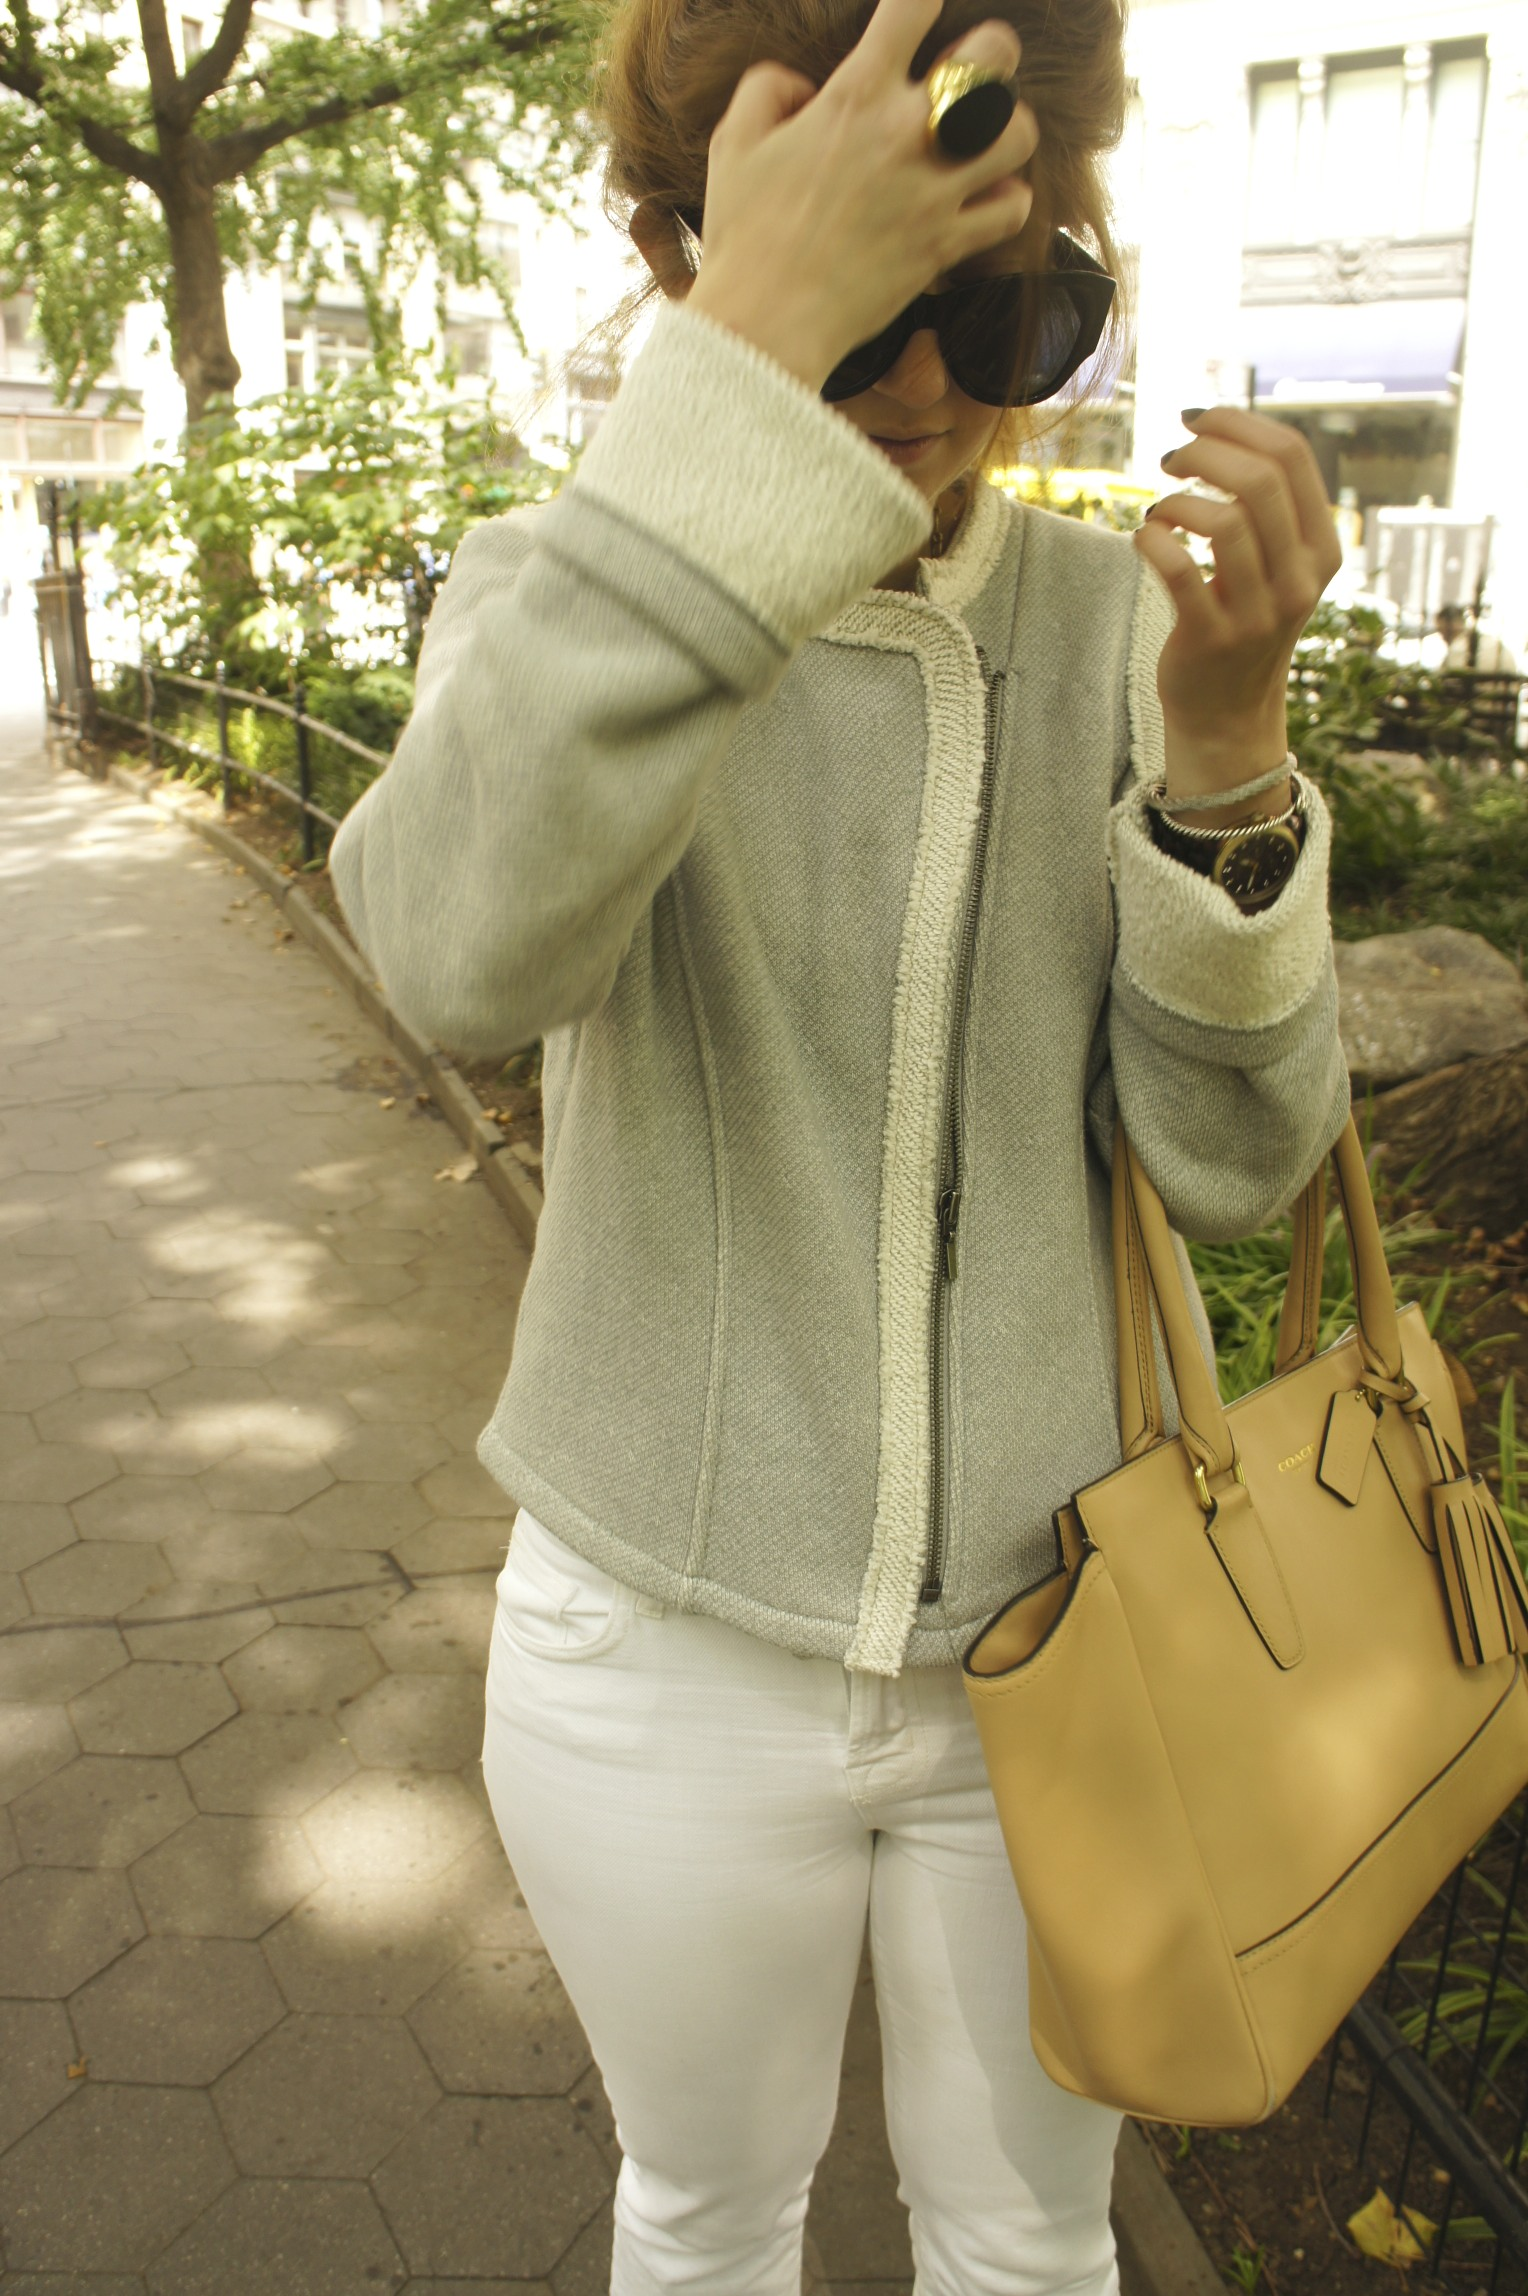 Outfit: terry pant suit